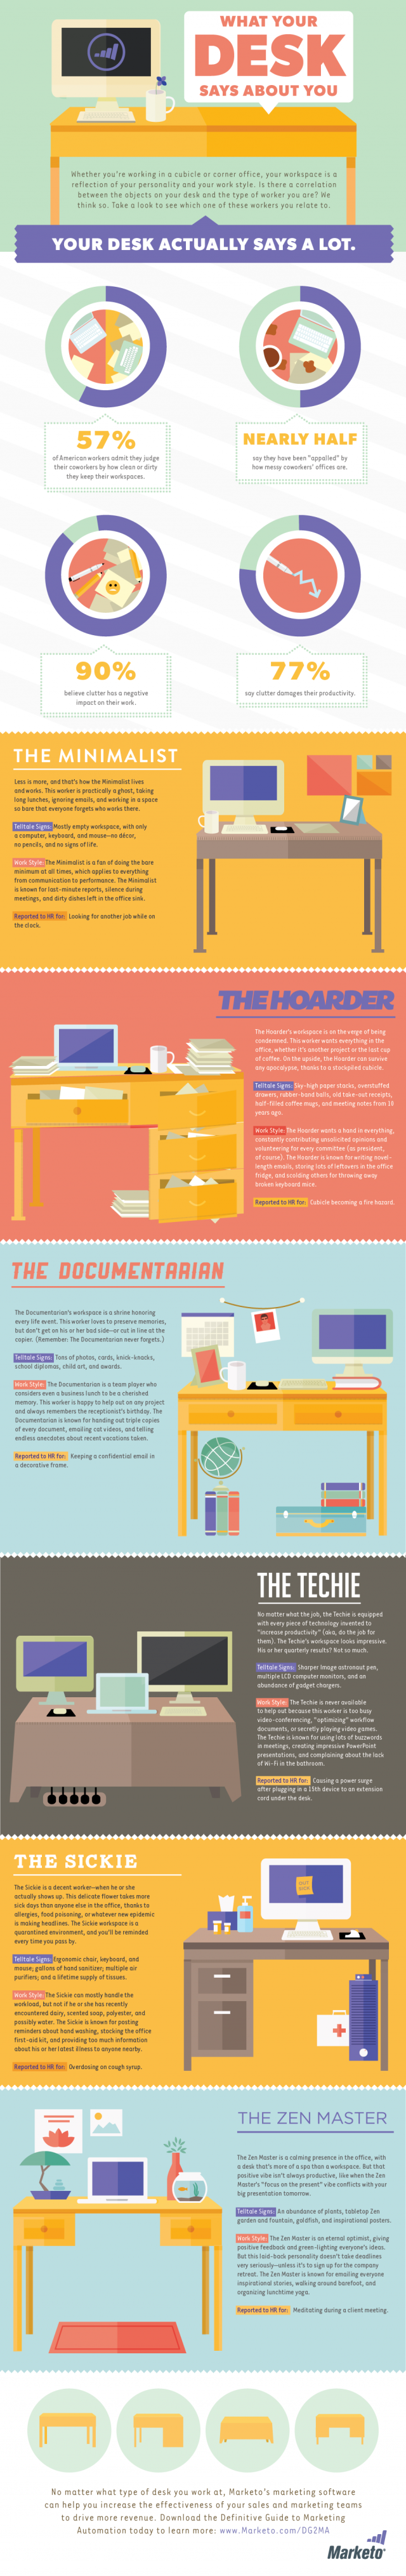 What Your Desk Says About You